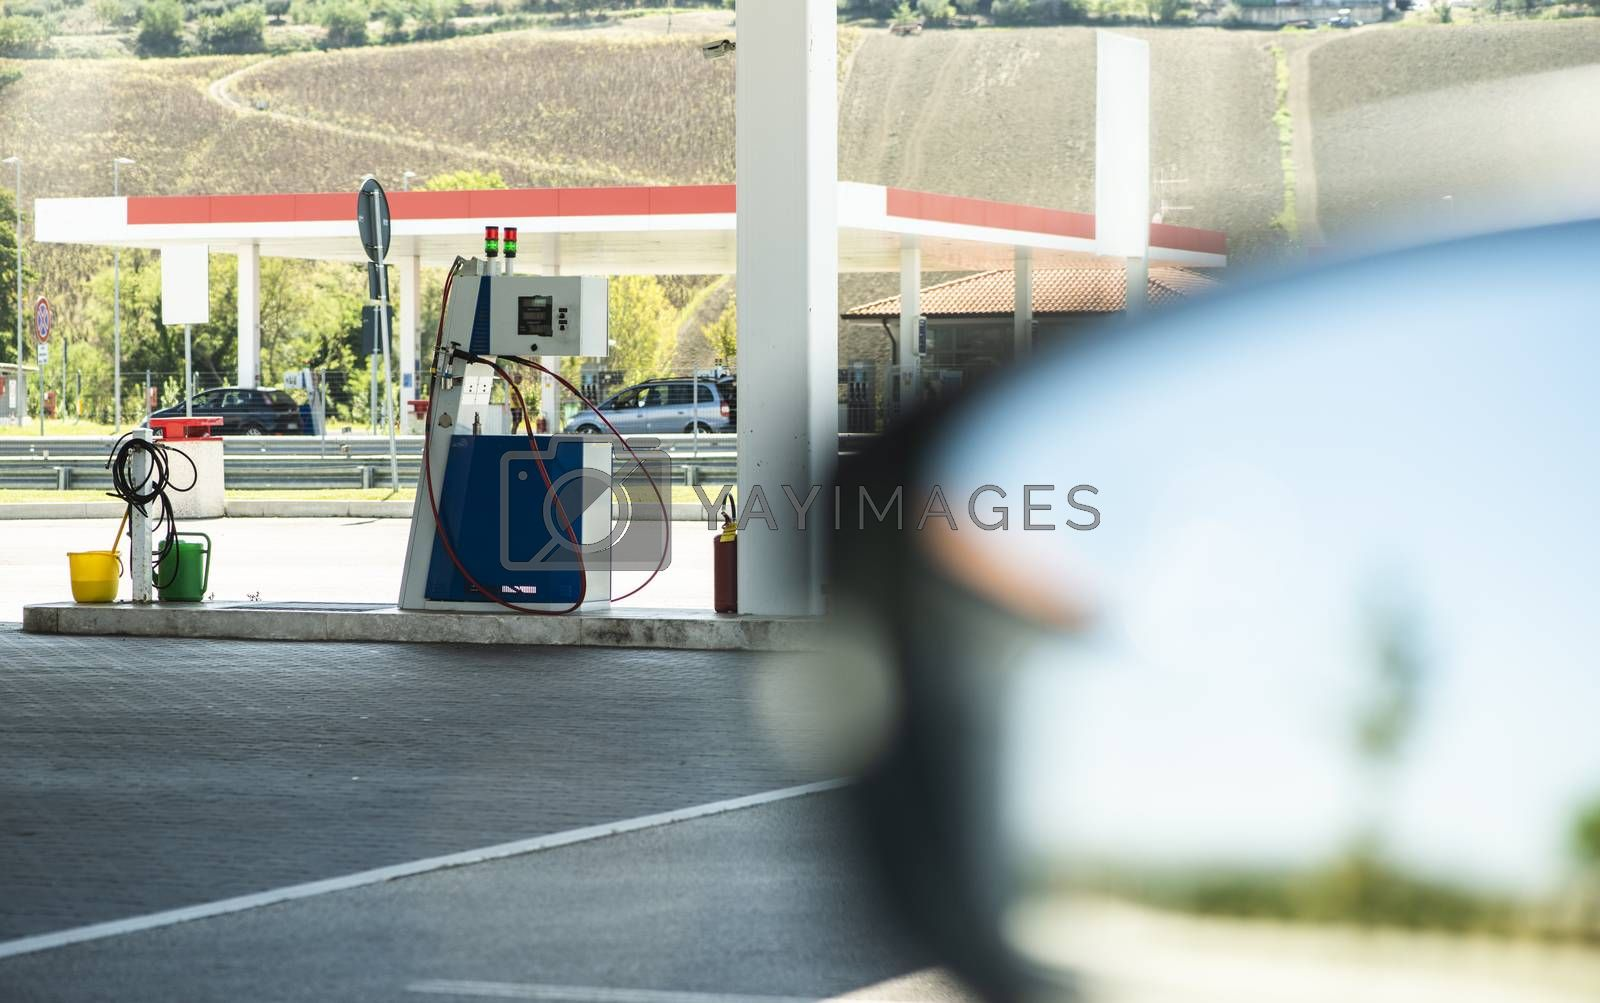 Gas station. Refueling car with Refueling car with gas pressure fuel. Gas loading column.  Car mirror.